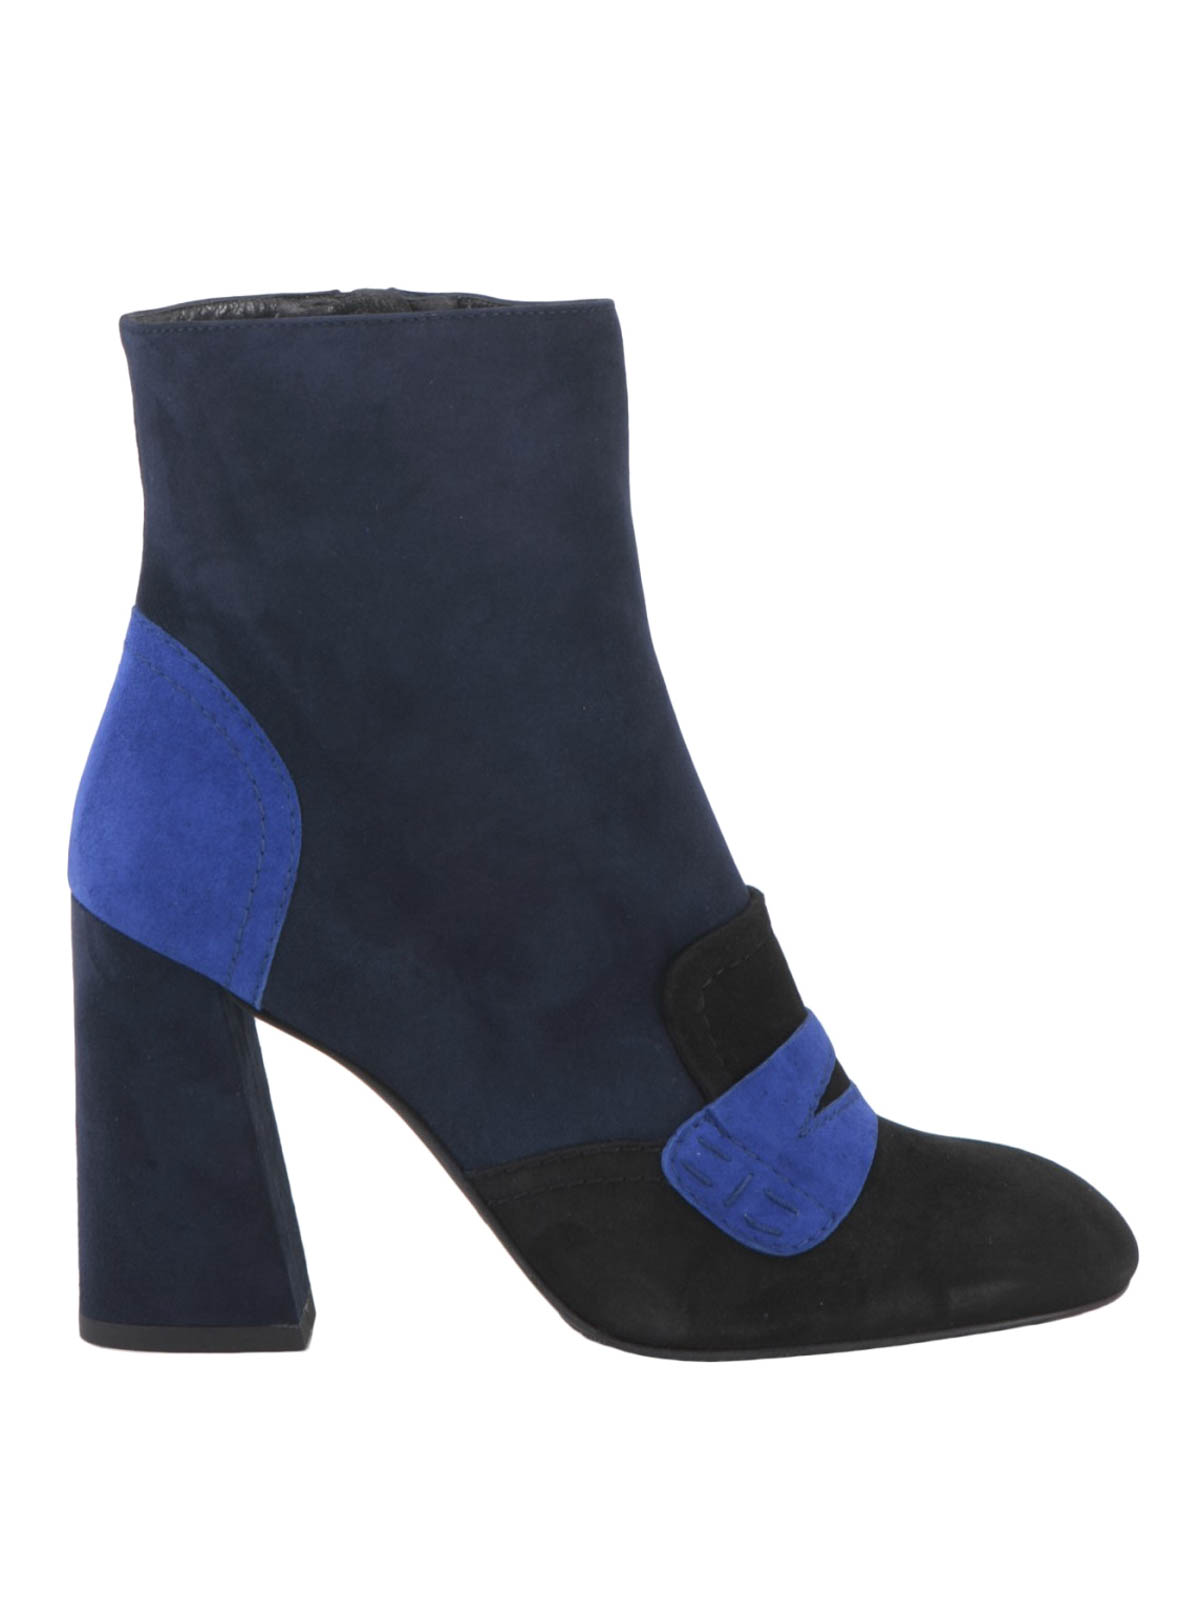 moxanne suede booties by stuart weitzman ankle boots ikrix